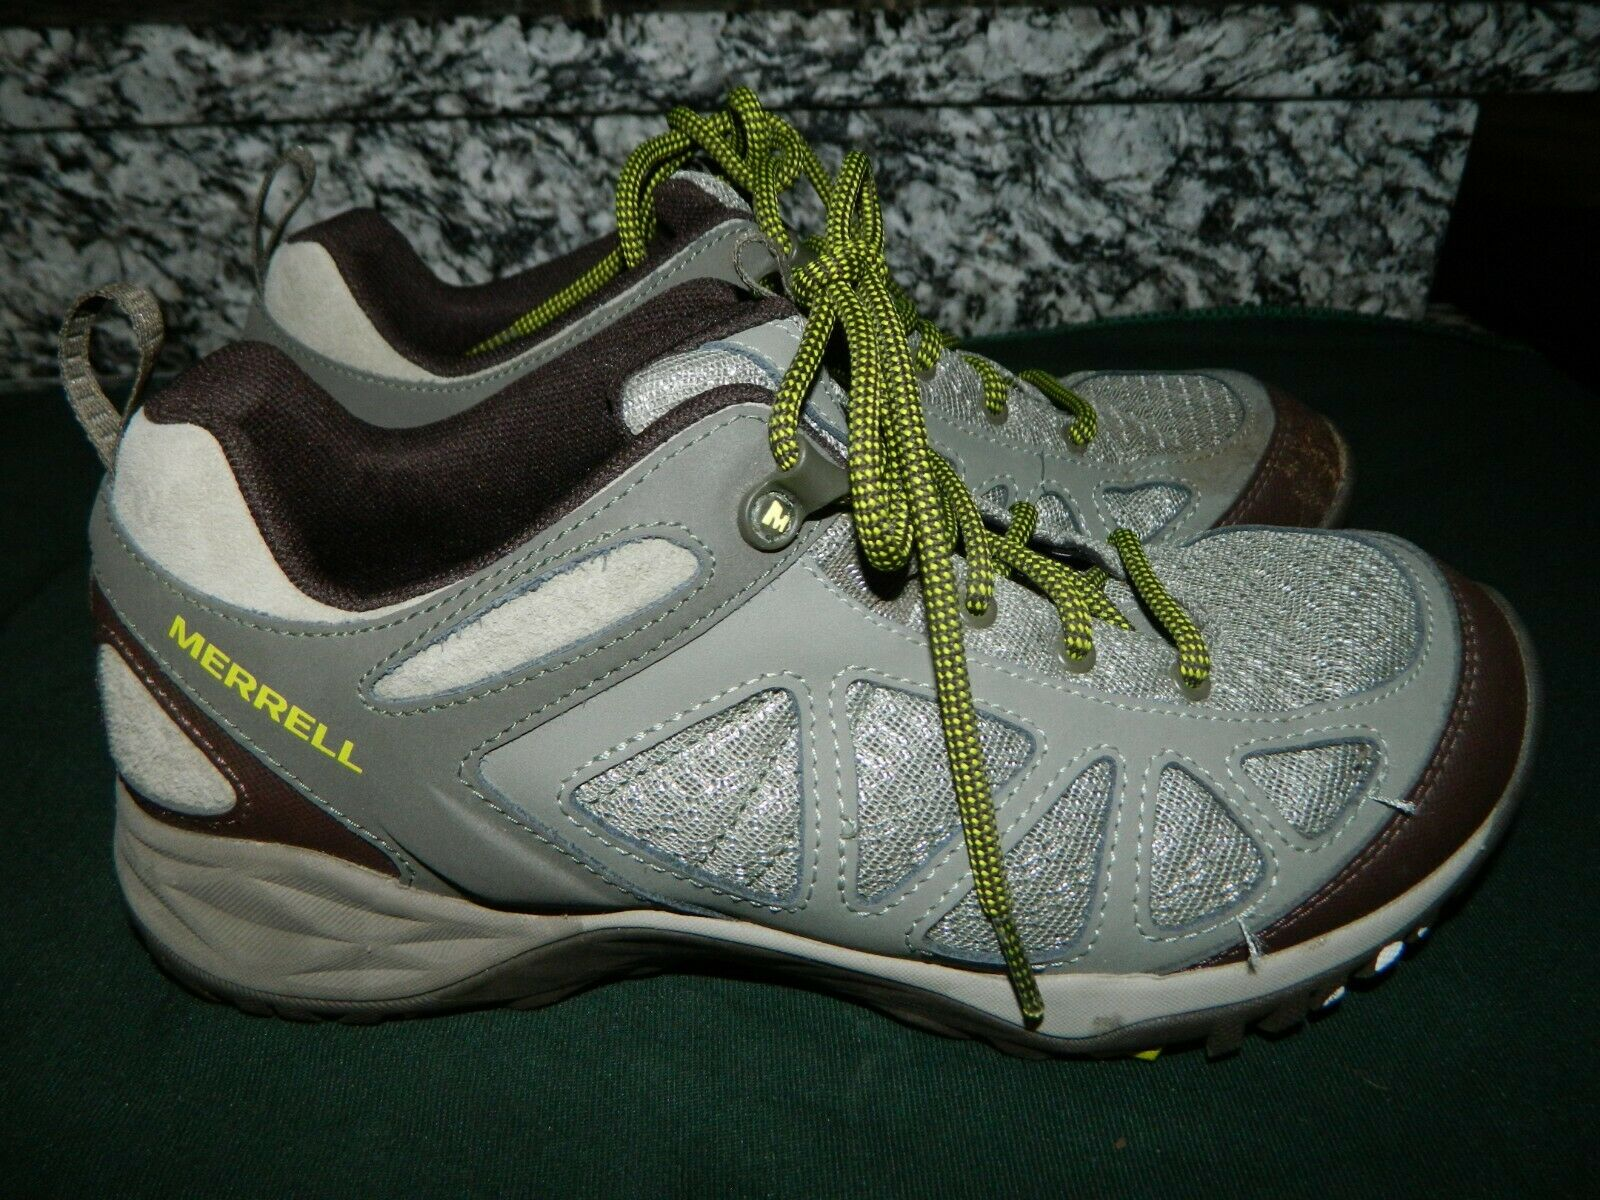 MERRELL  Women's Sz 8.5  Siren Sport  Q2  Hiking shoes in Mint Condition  60% off